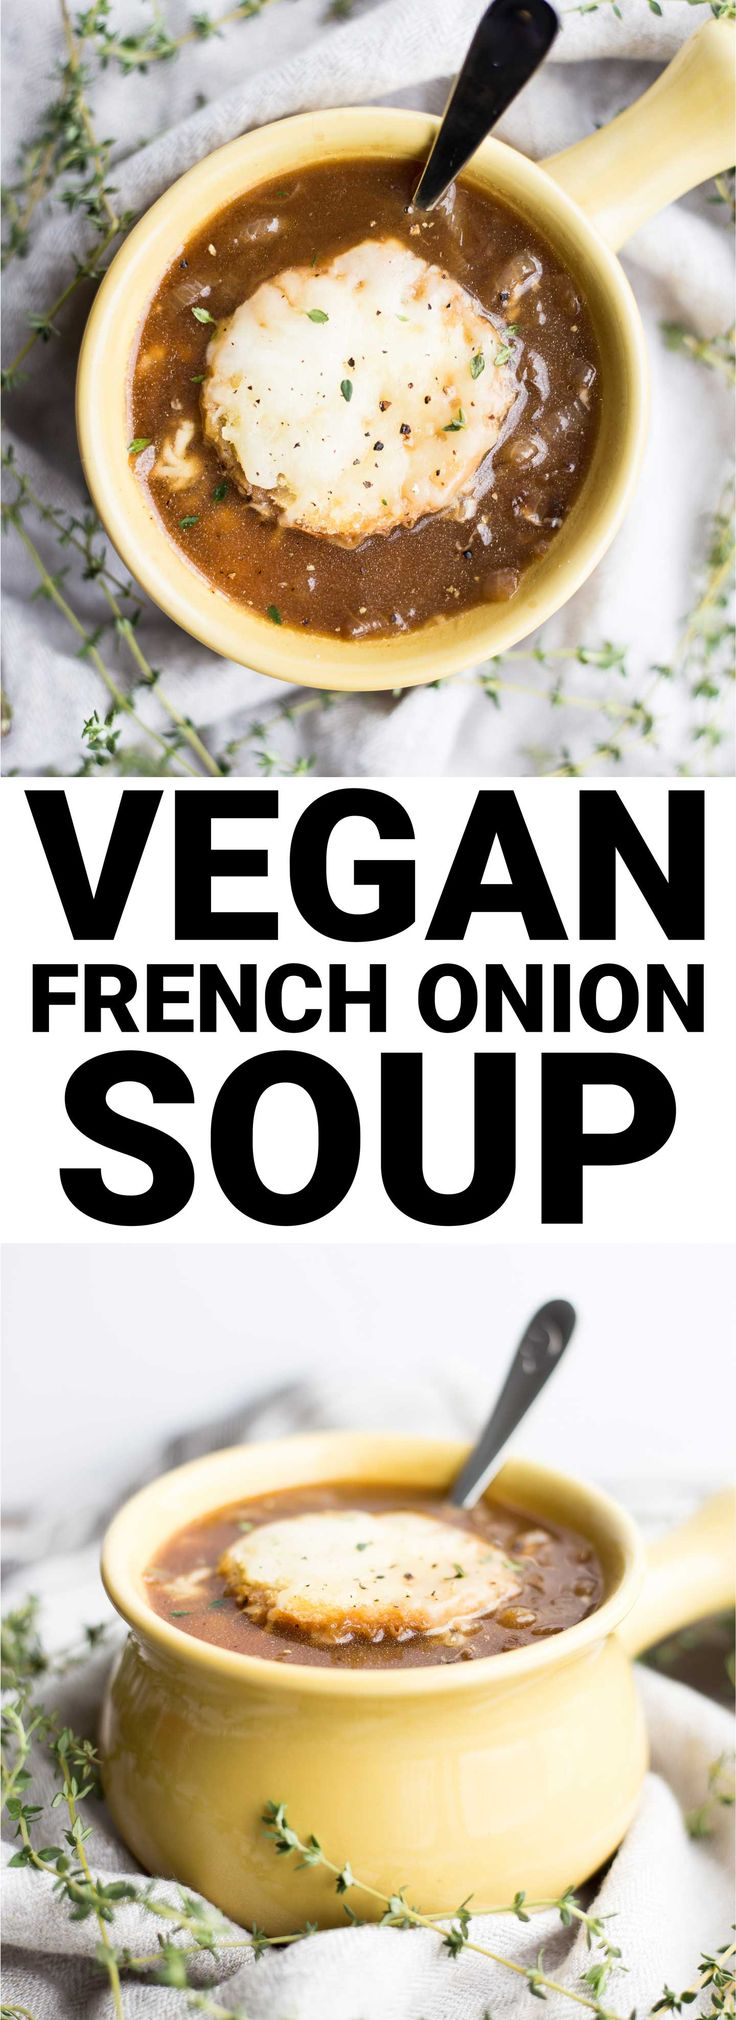 Vegan French Onion Soup: The classic sweet and savory soup...made vegan! Warm, comforting, and perfect for a cold winter night. || fooduzzi.com recipe